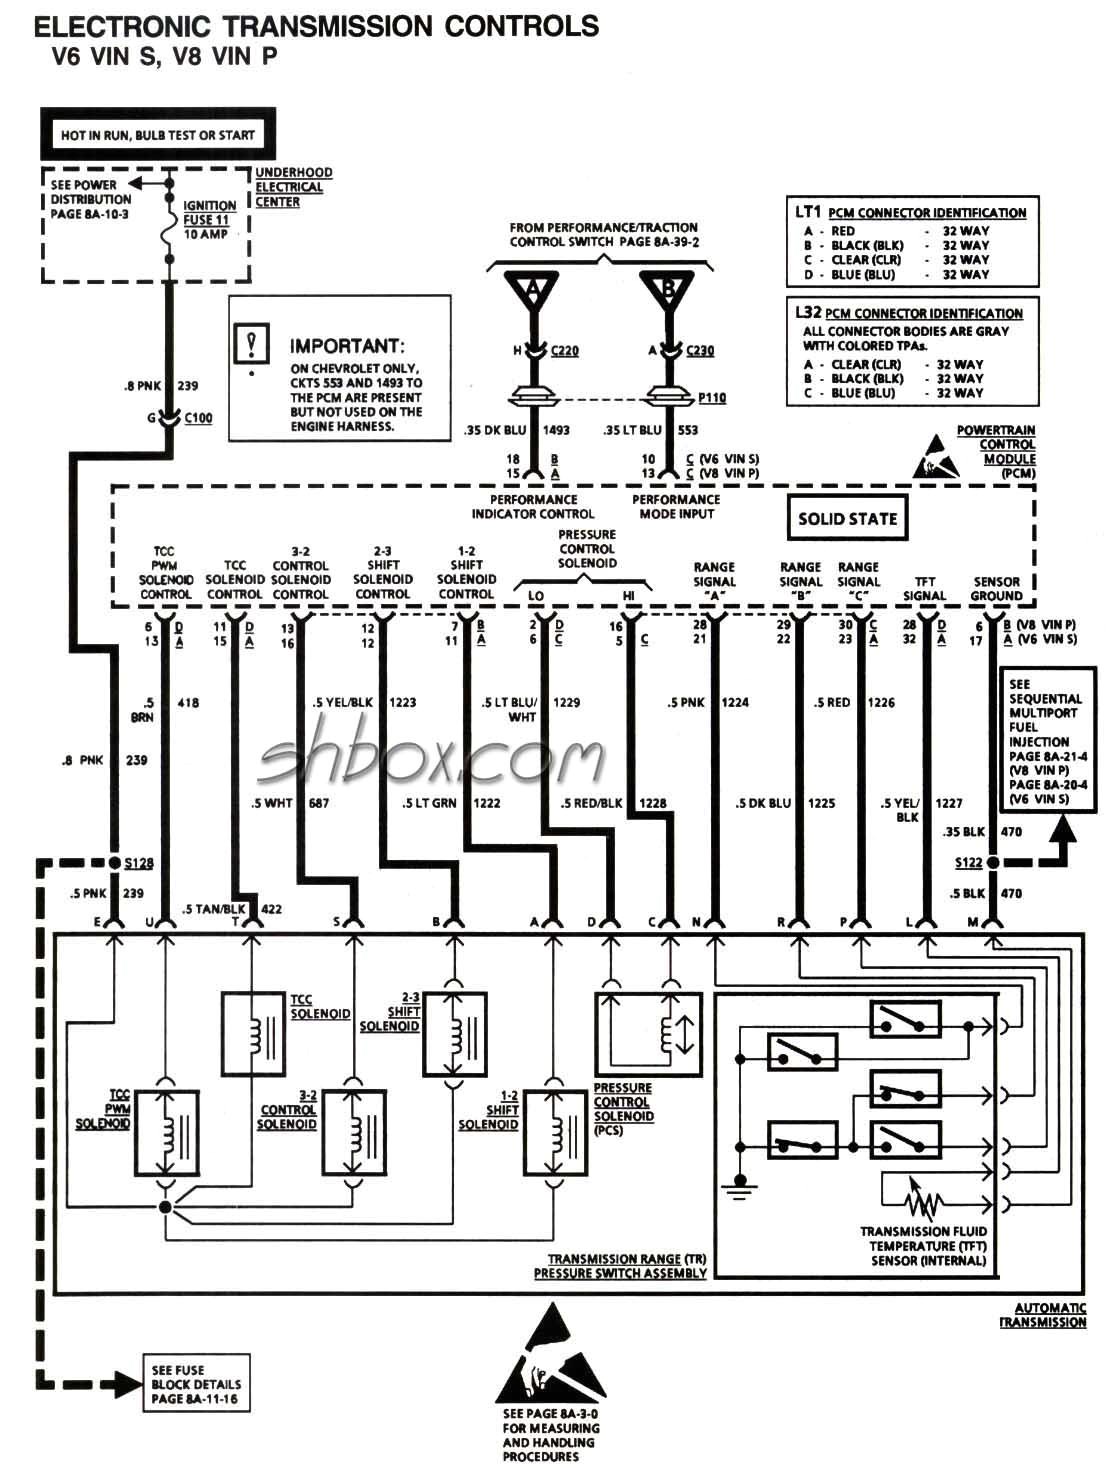 Wiring Diagram for 4l60e Transmission 1995 Chevy Transmission Wiring Harness Wiring Diagram Article Review